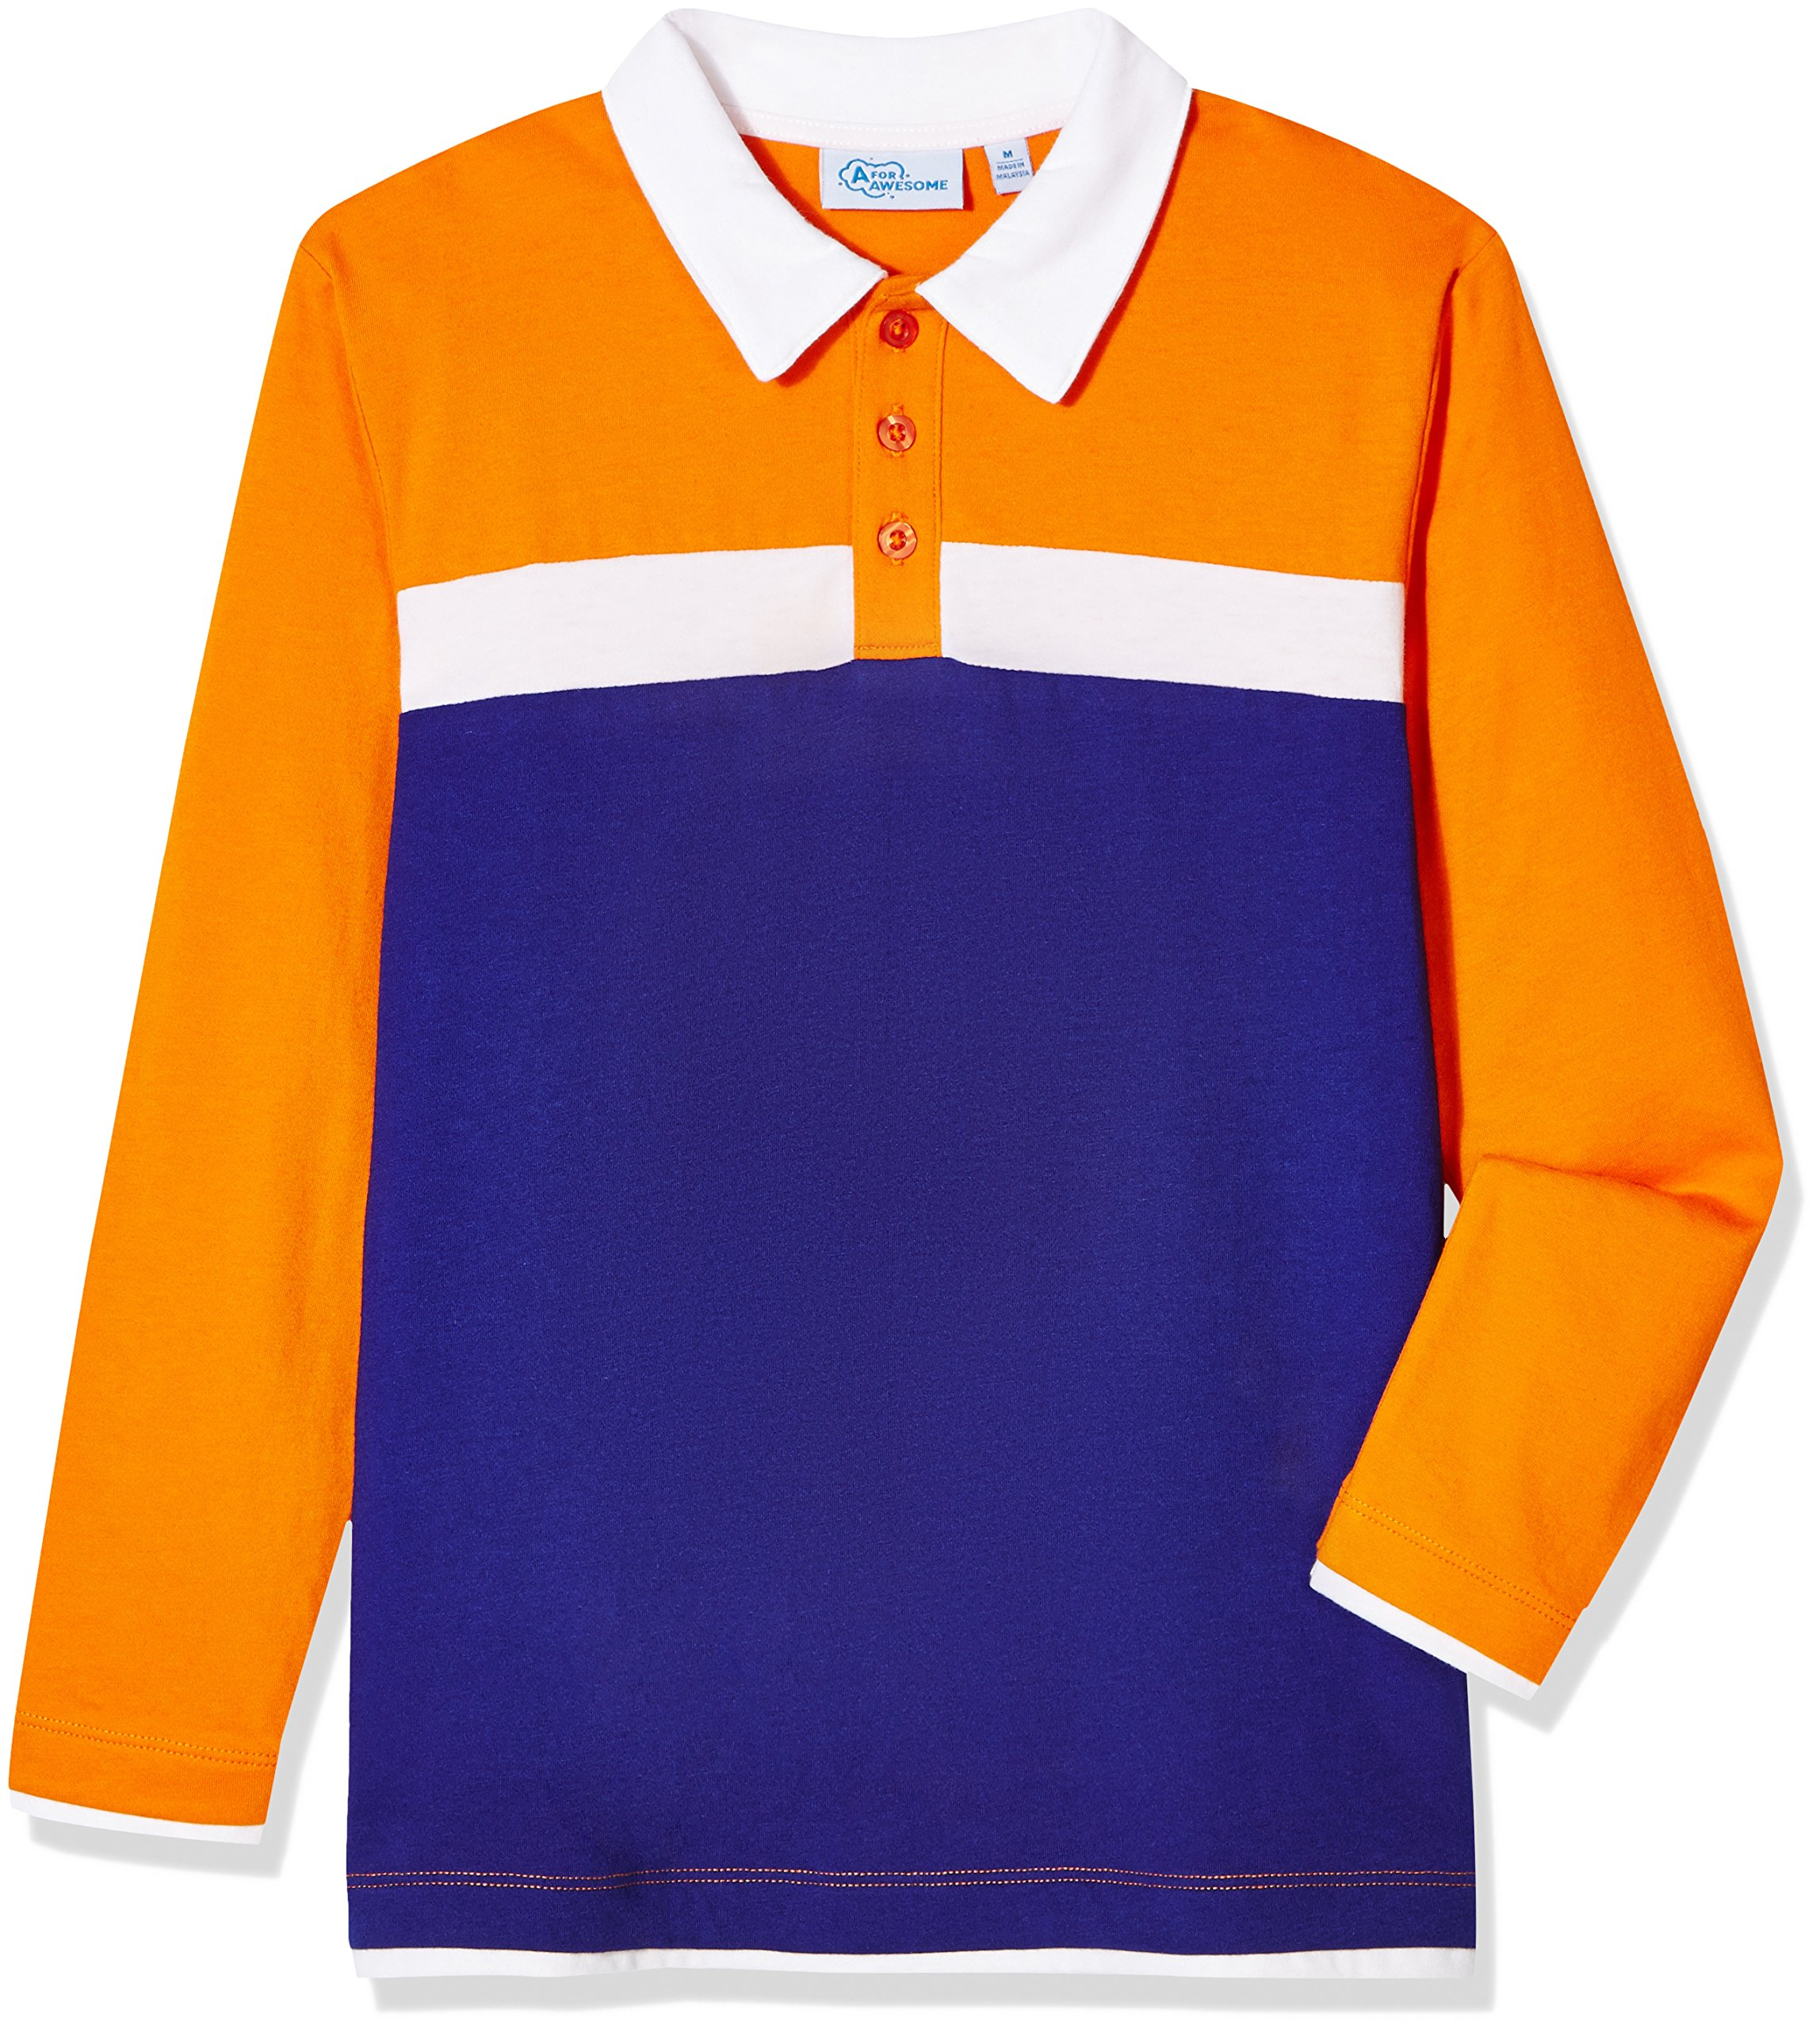 A for Awesome Boys Long Sleeve Cotton Jersey Blend Polo Short Large Orange